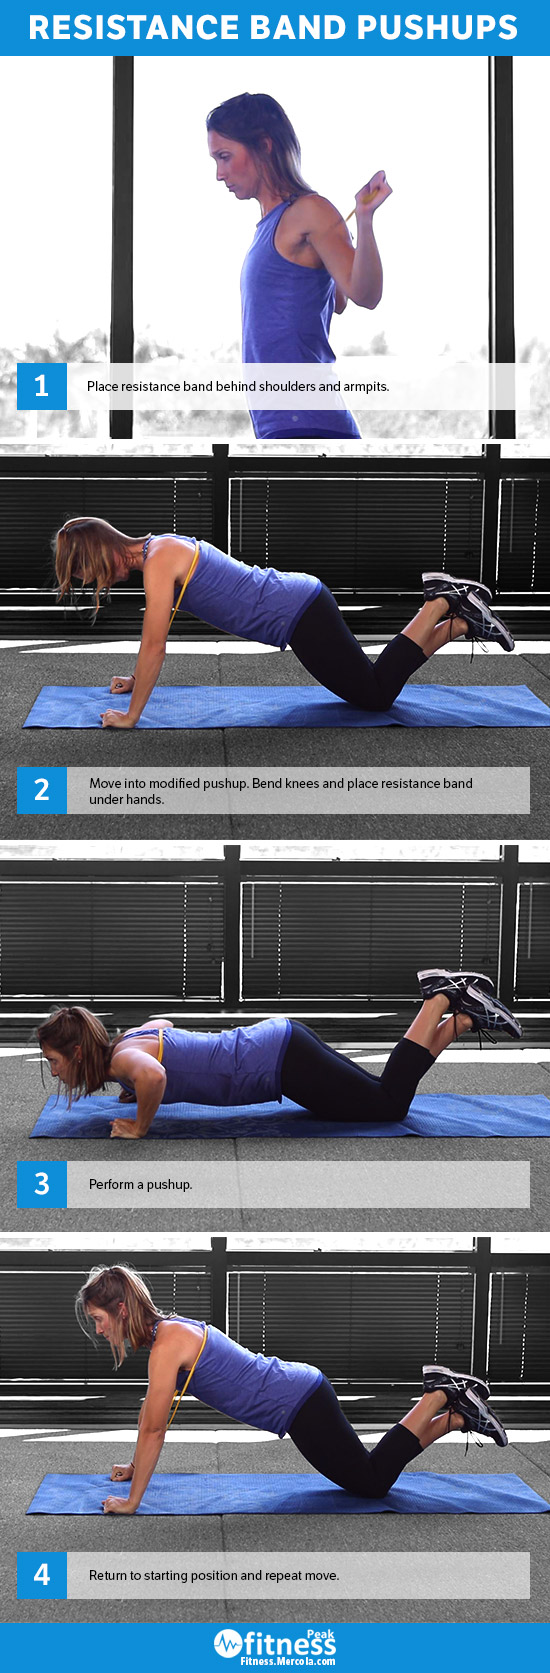 resistance band pushups